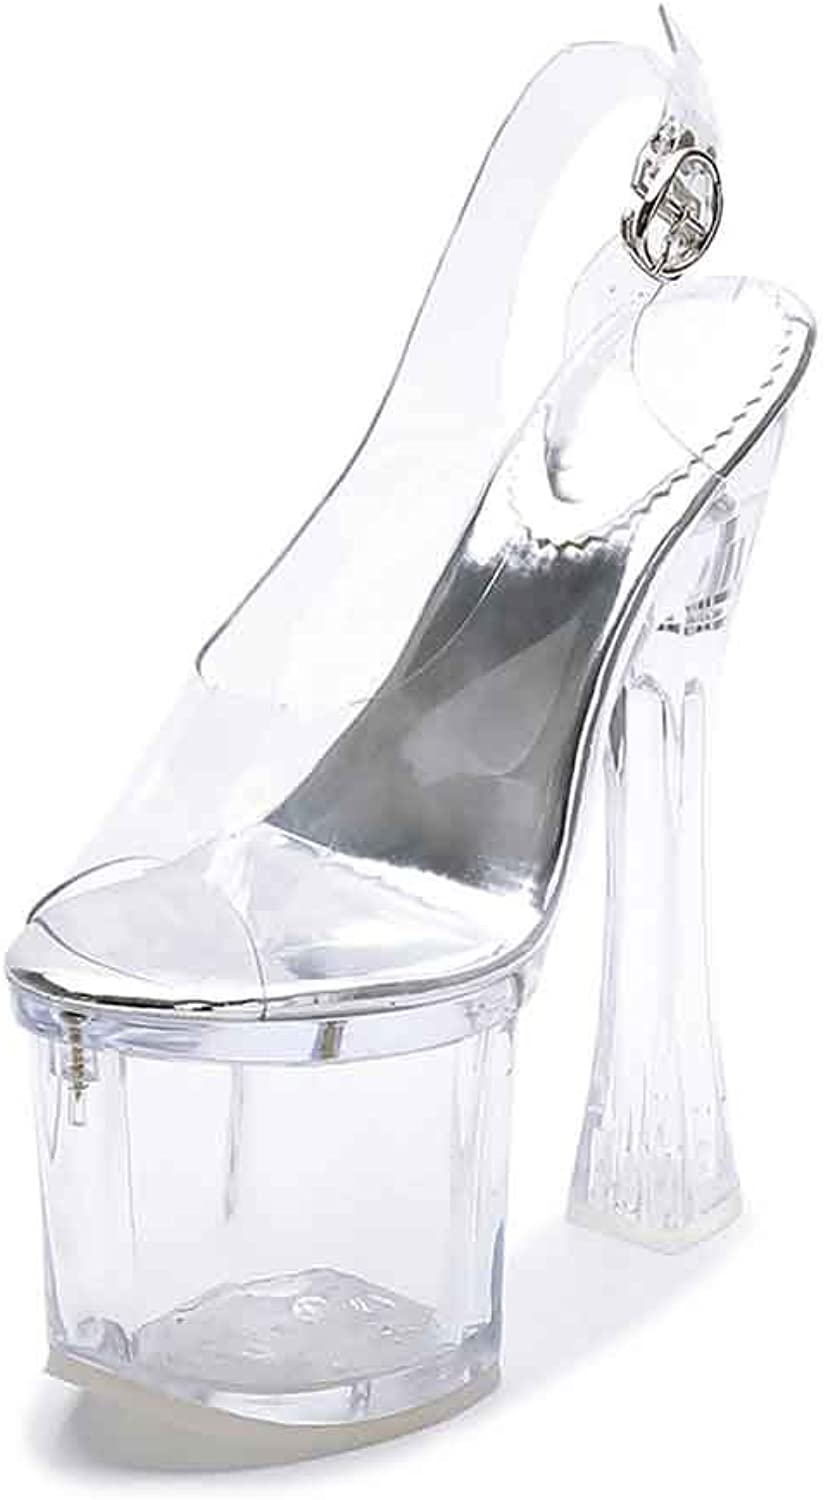 LIURUIJIA Women's 18Cm Transparent Sexy Crystal High Heel Sandals LX-1SB-1